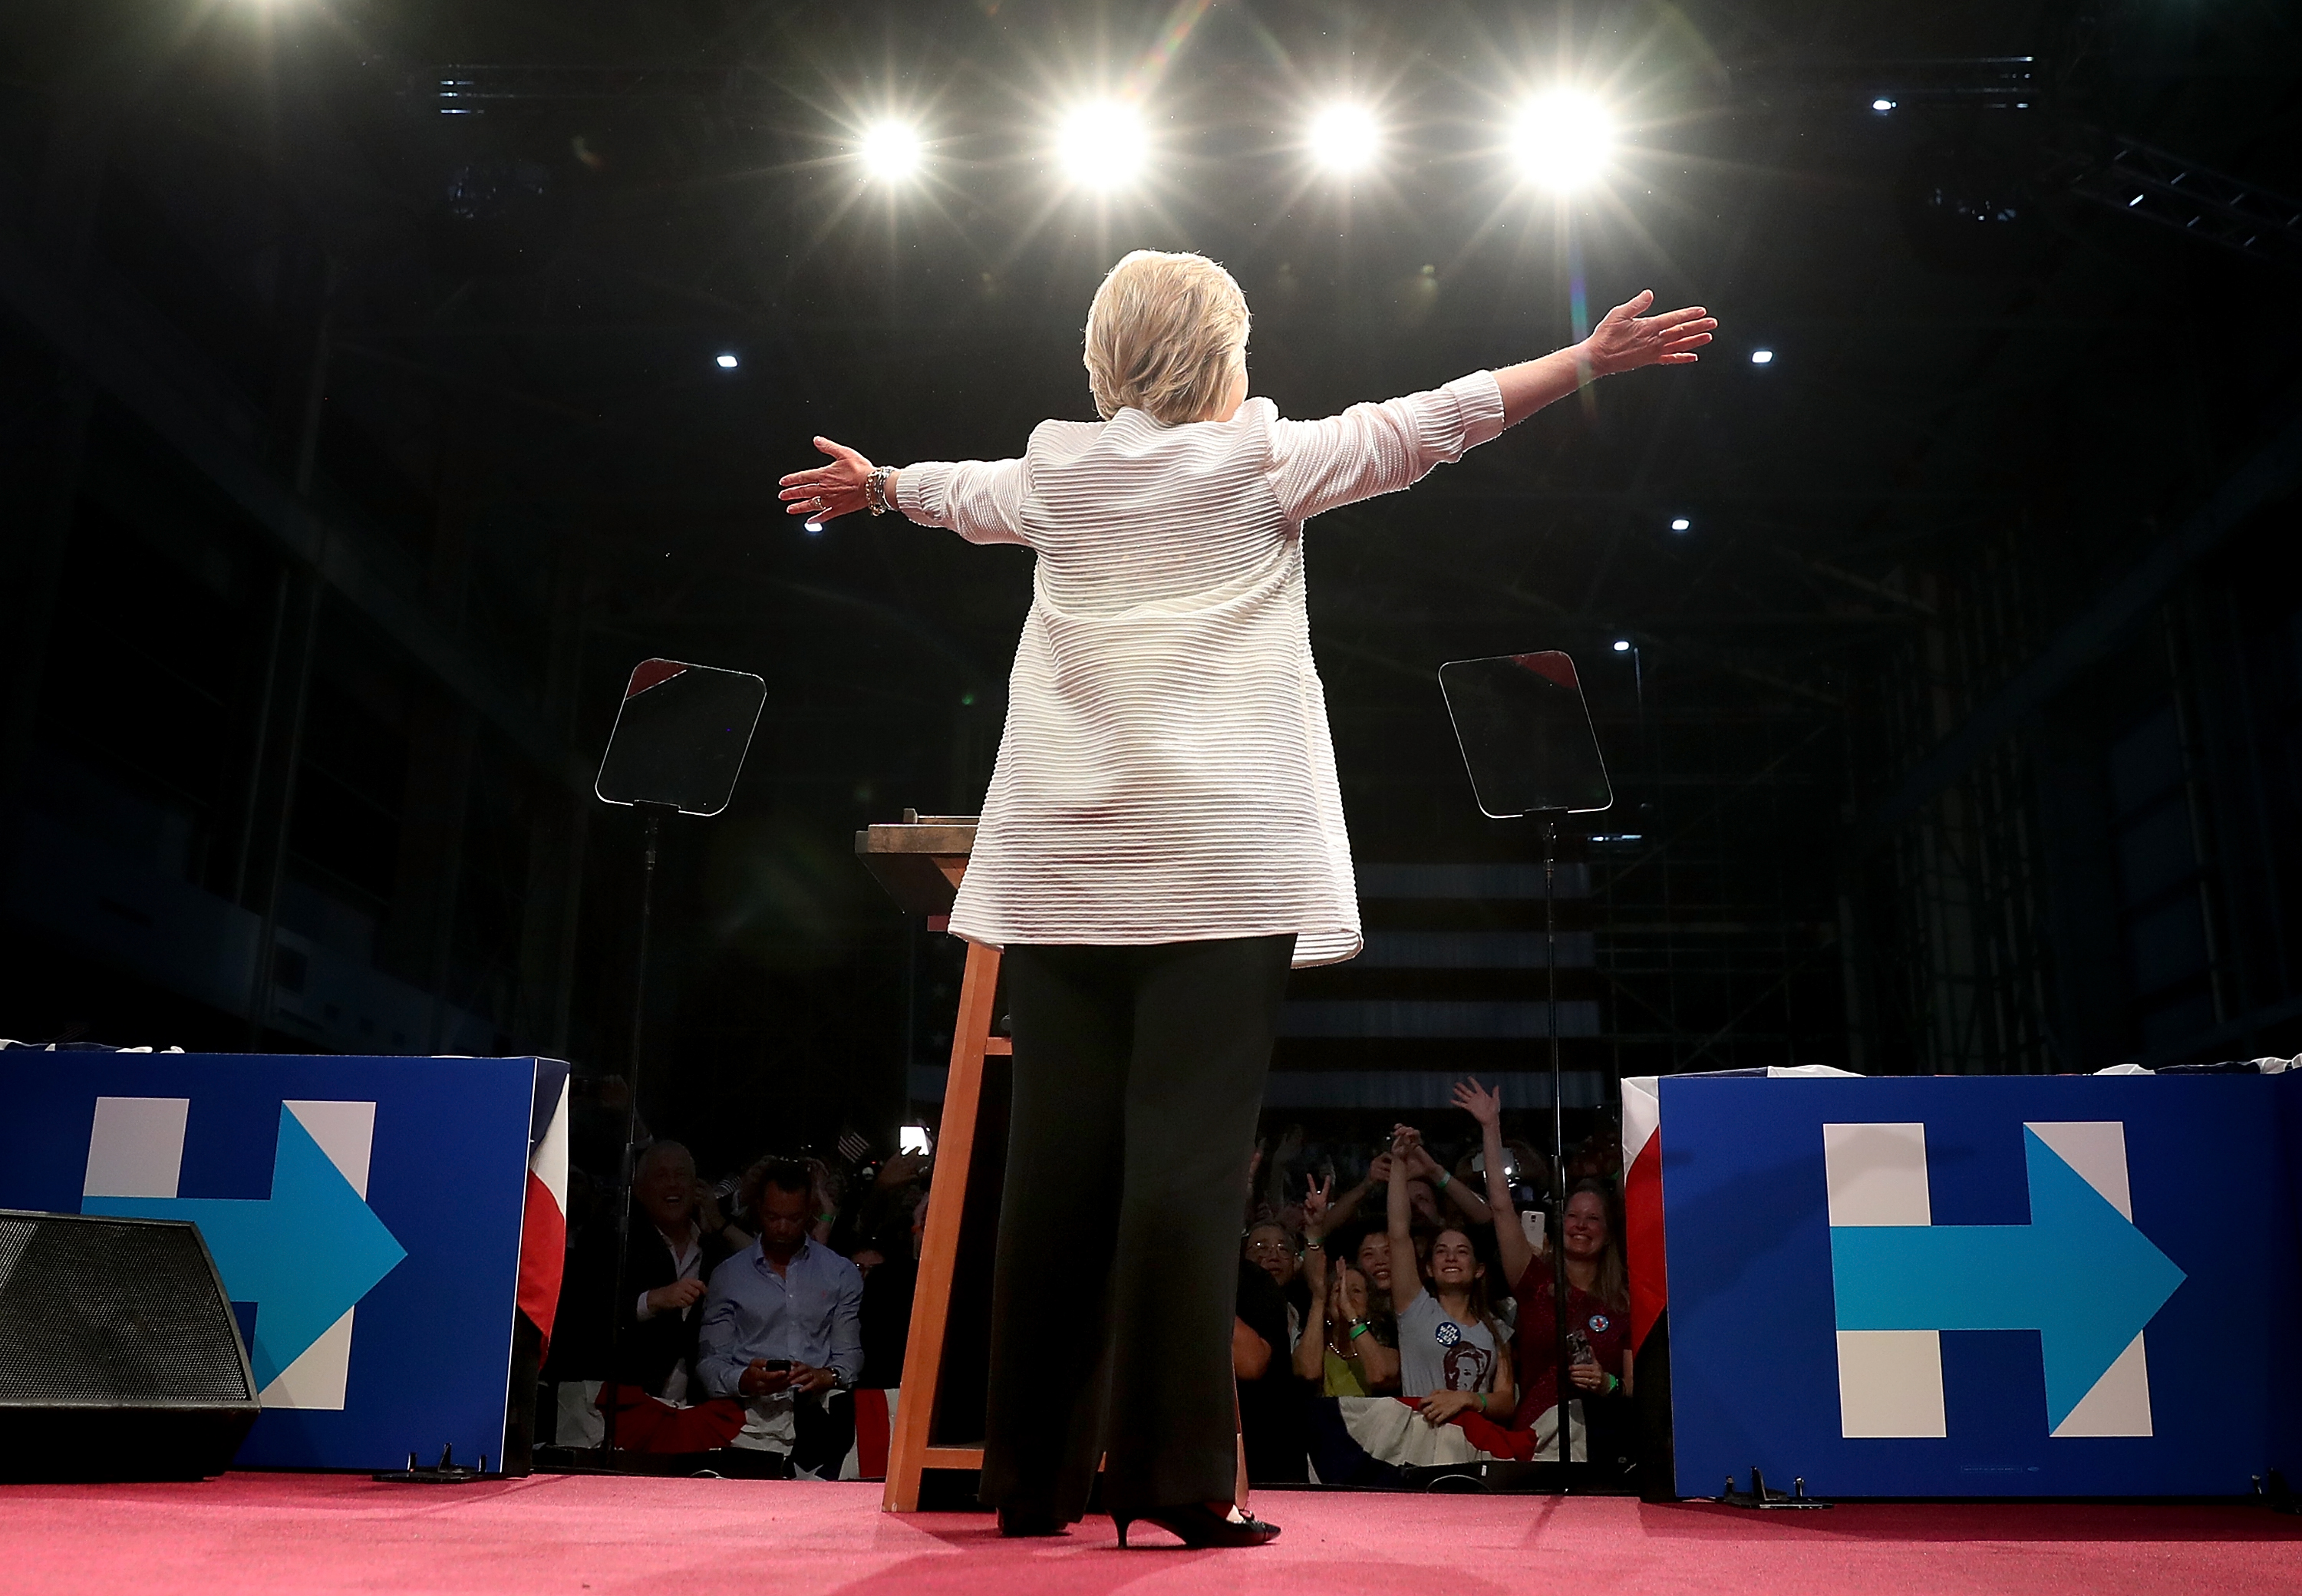 Democratic presidential candidate former Secretary of State Hillary Clinton greets supporters during a primary night event on June 7, 2016 in Brooklyn, New York.  Hillary Clinton beat rival Bernie Sanders in the New Jersey presidential primary.  (Justin Sullivan--Getty Images)